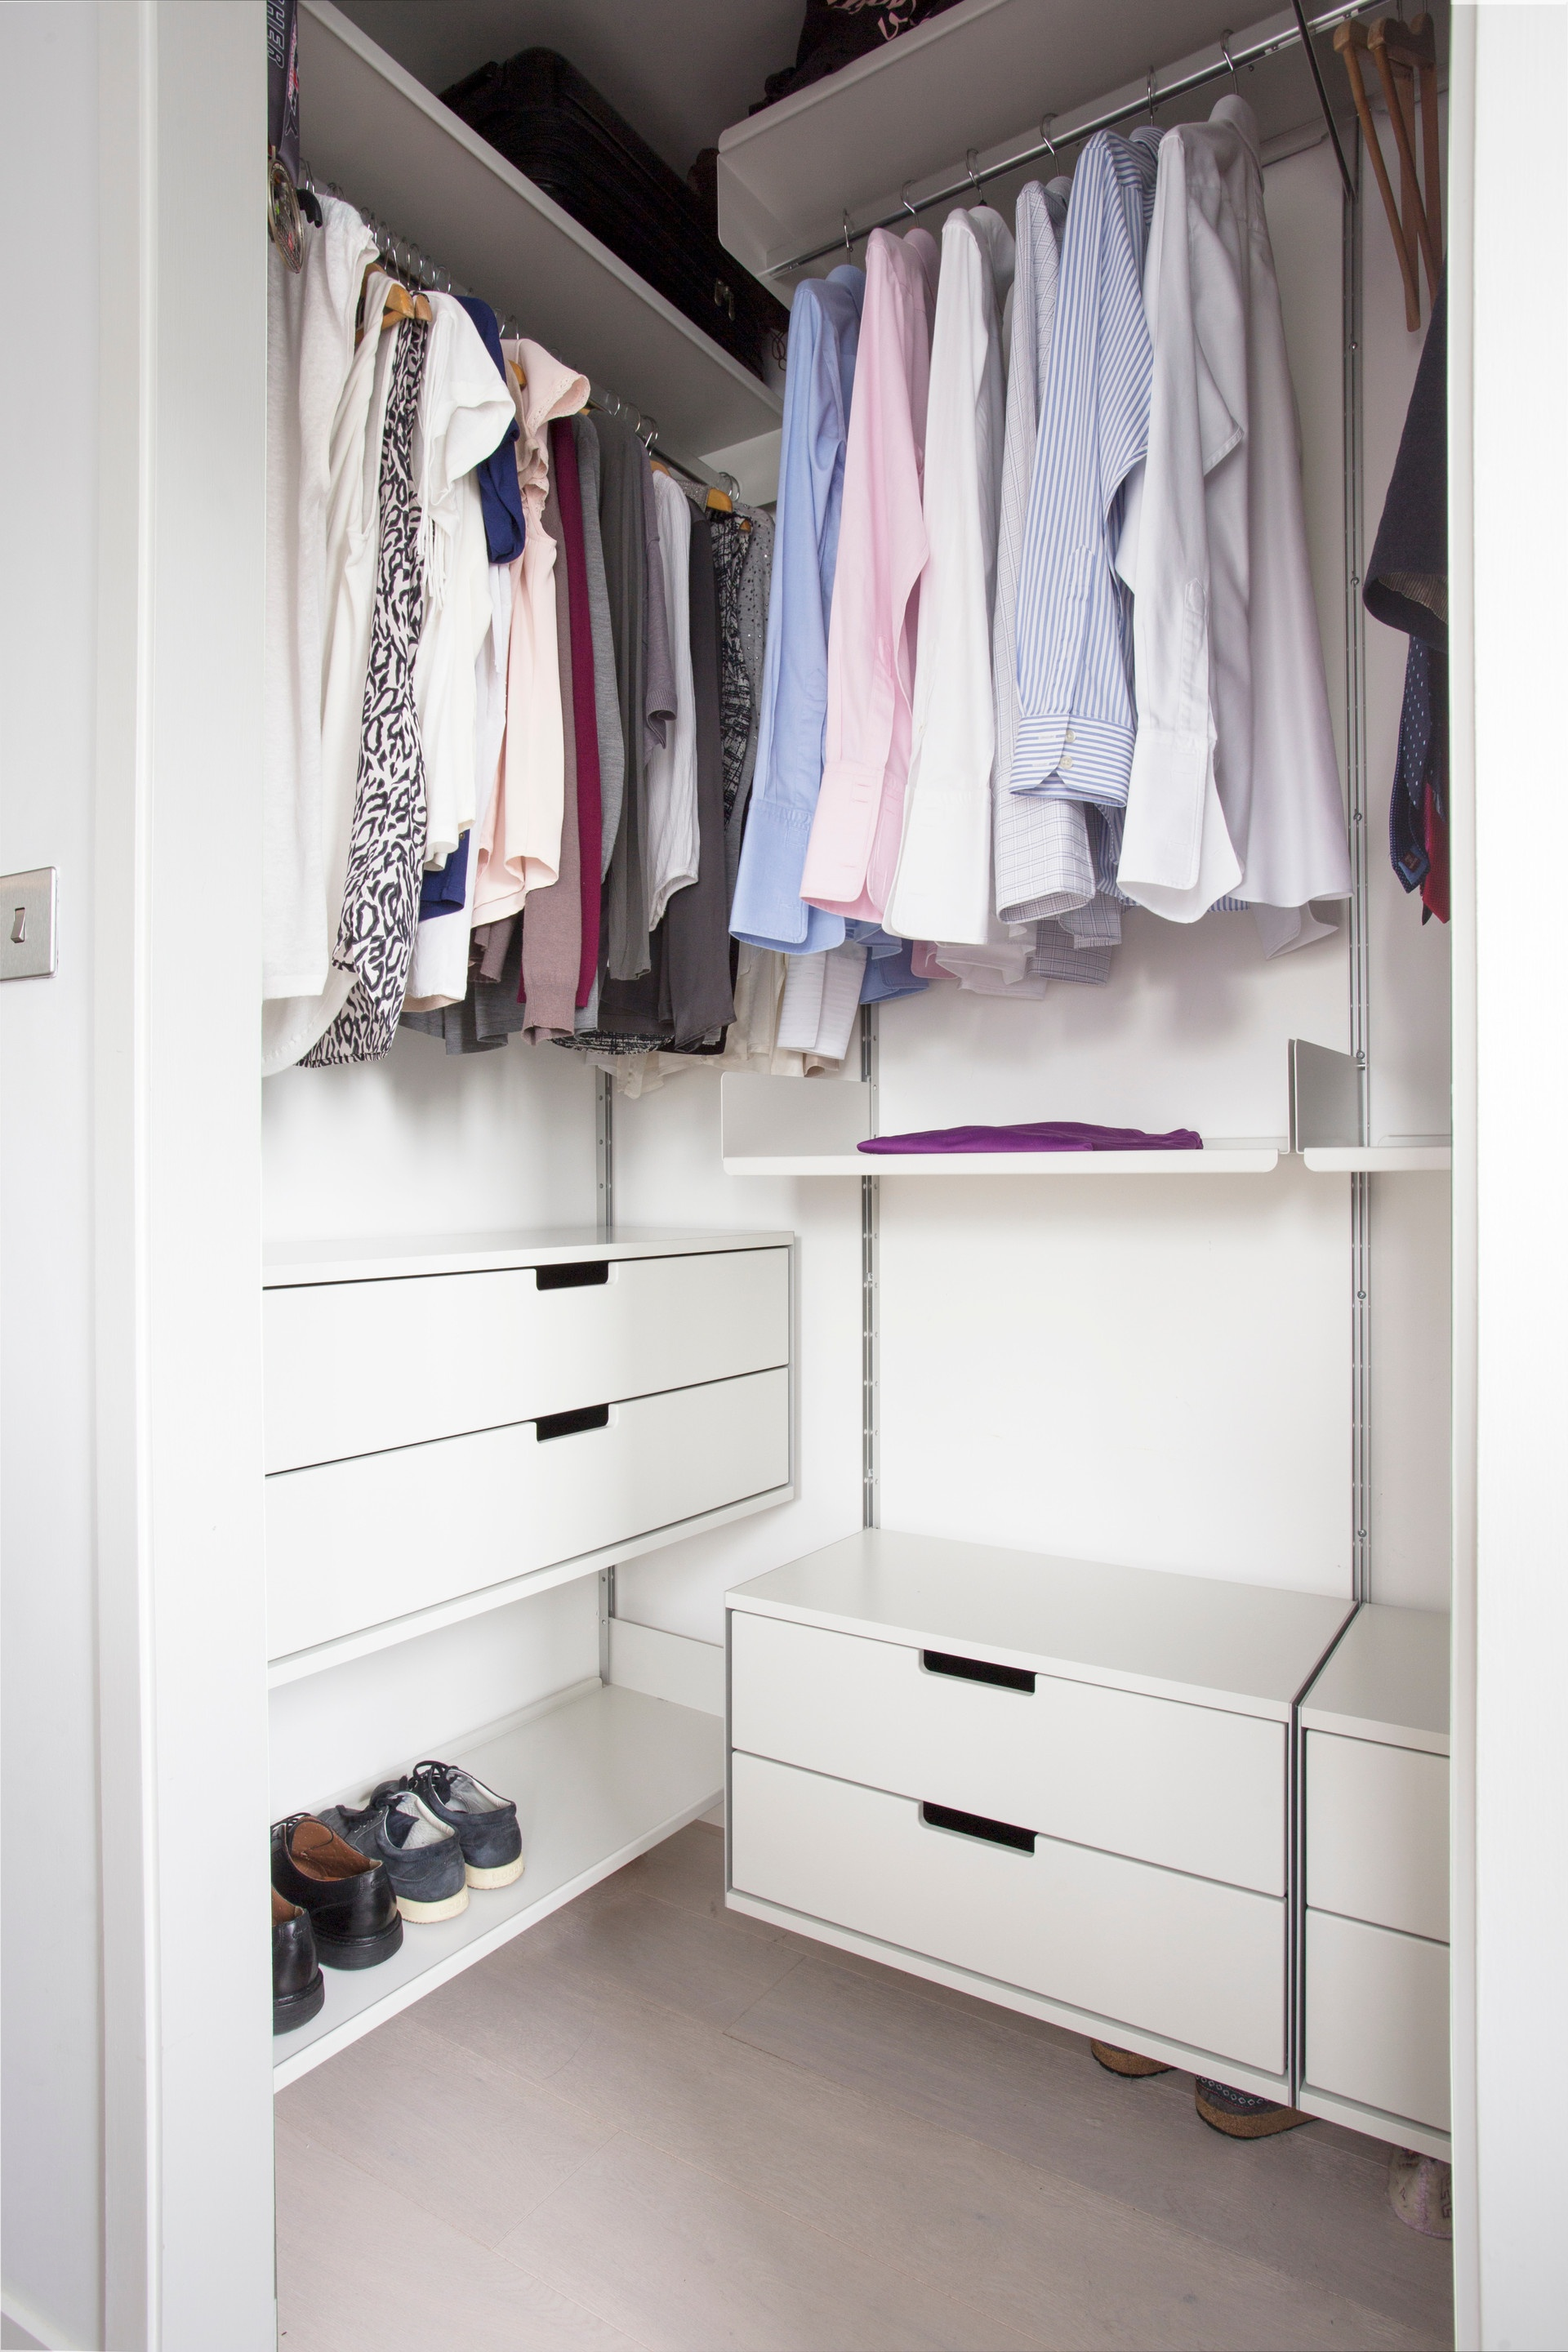 Bedroom/wardrobe with 606 Universal Shelving System